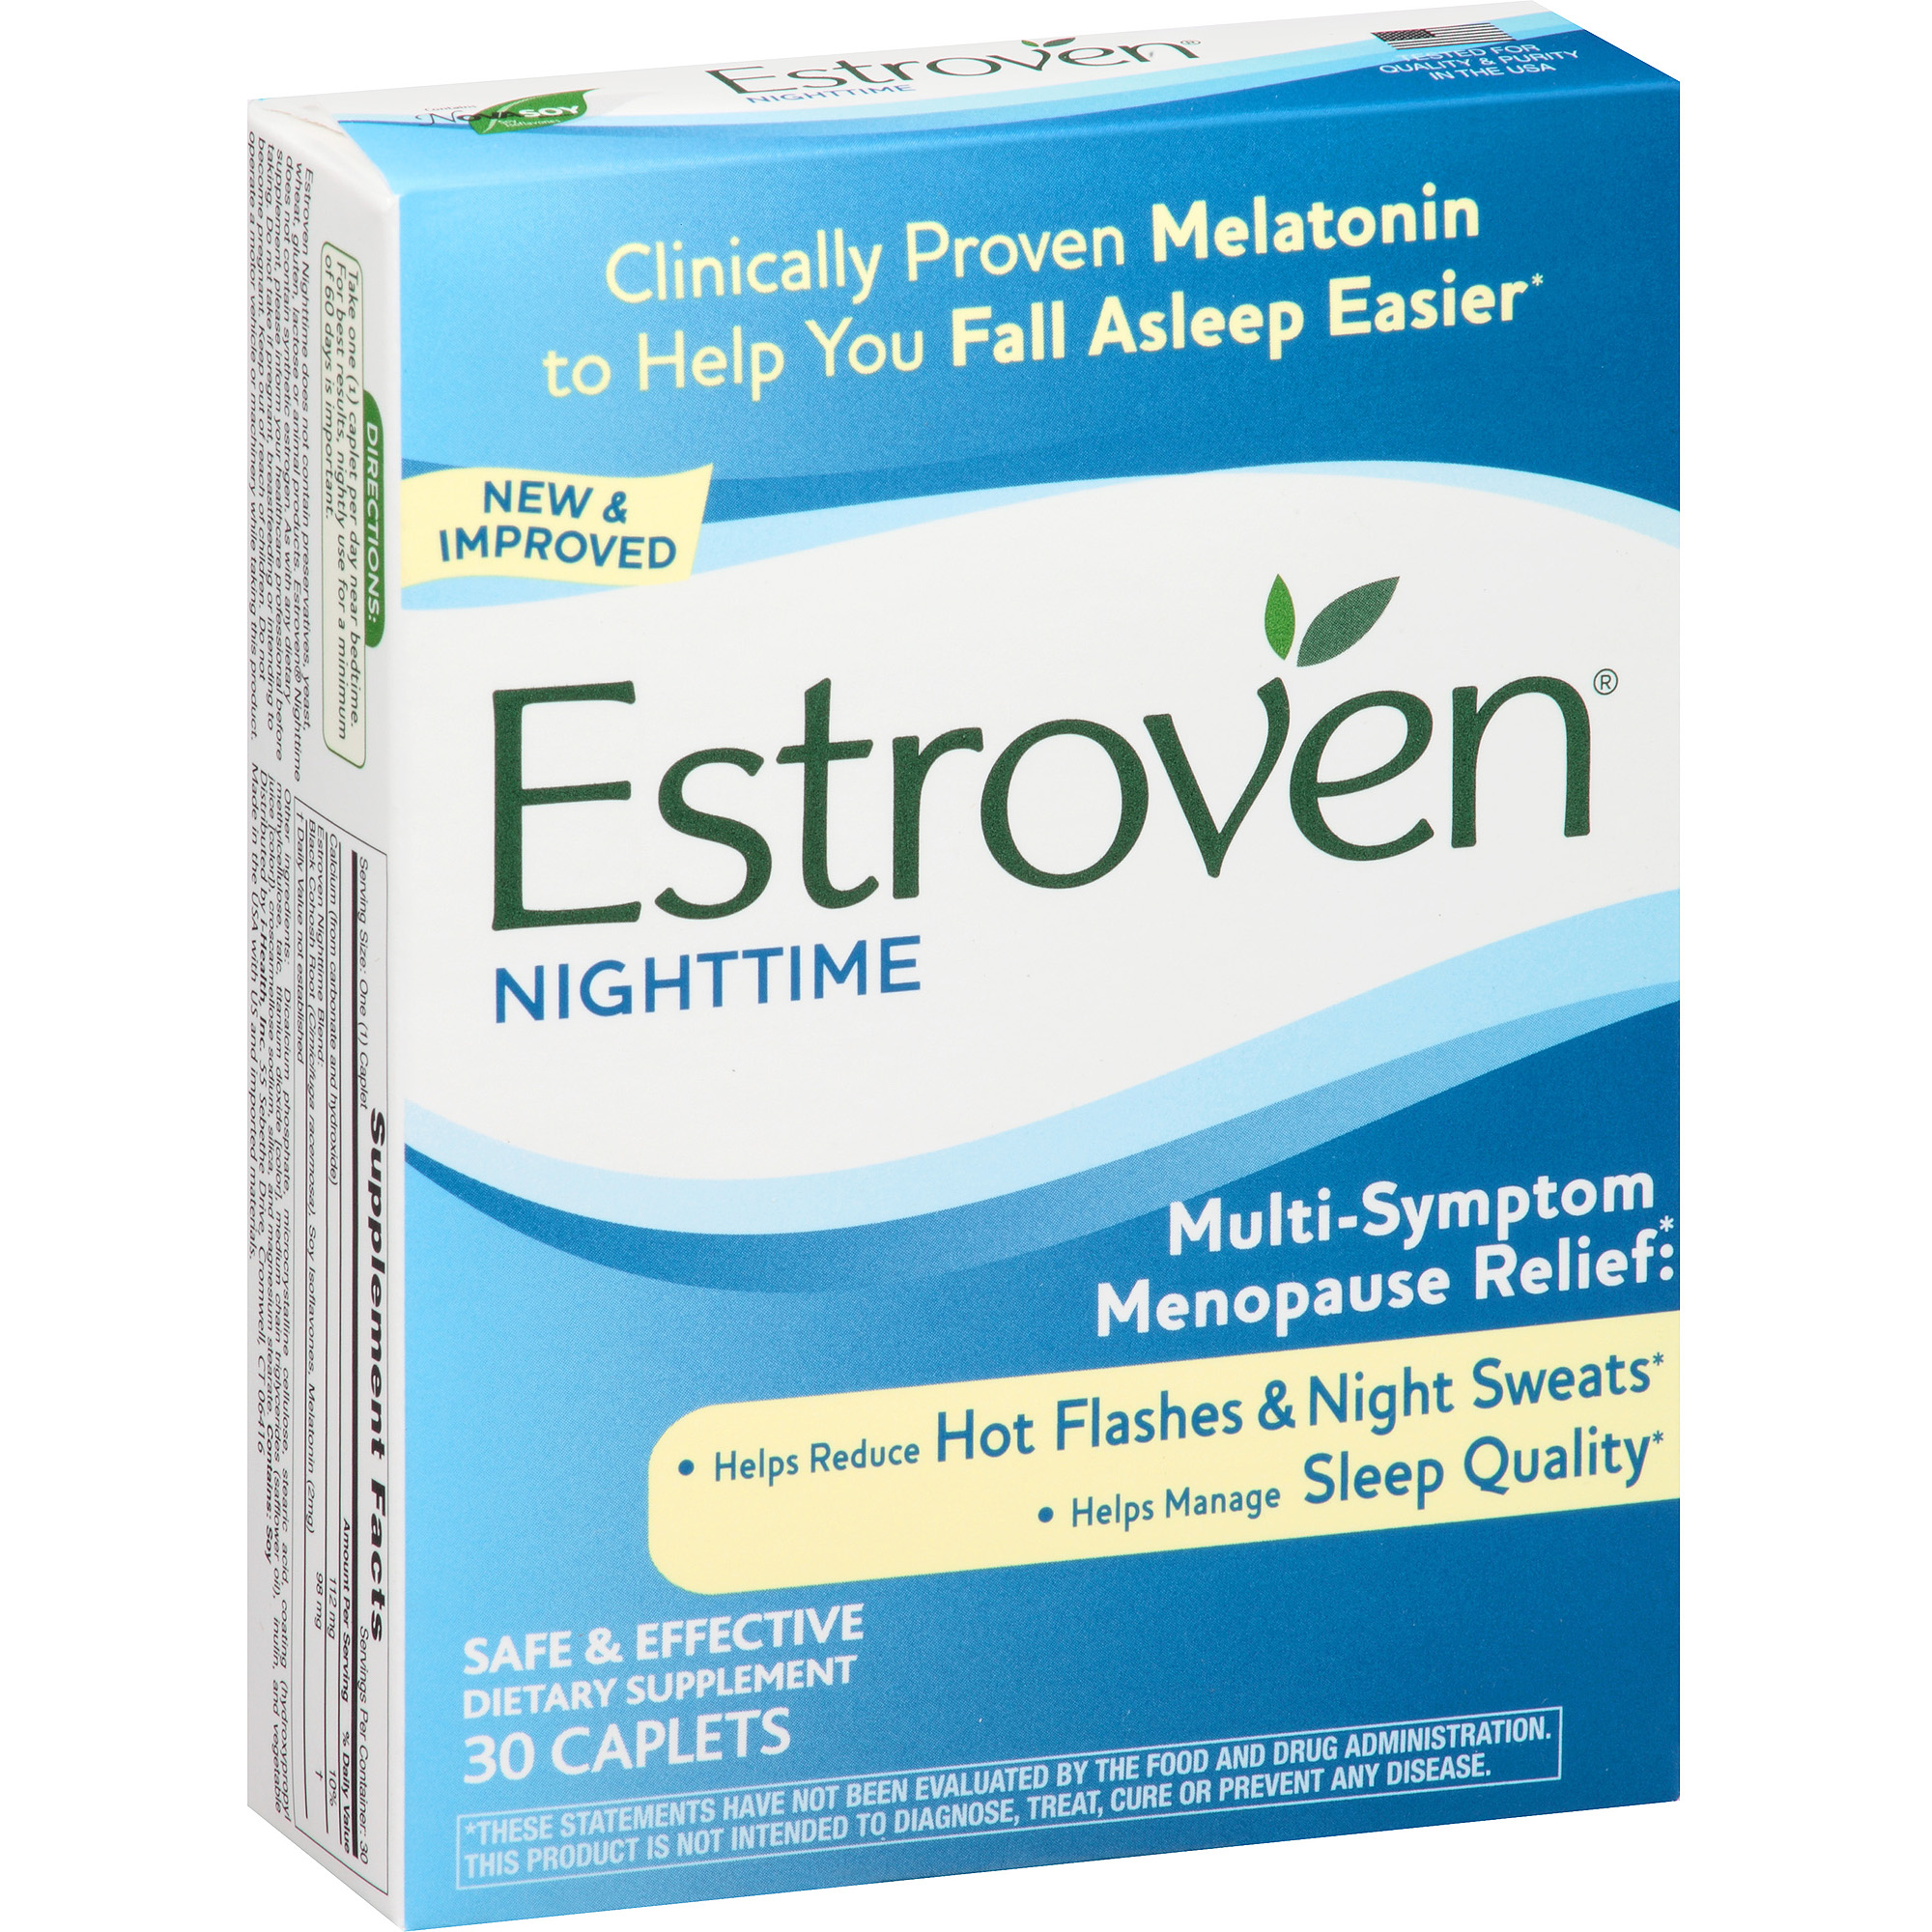 Estroven Nighttime Multi-Symptom Menopause Relief Dietary Supplement Caplets, 30 count